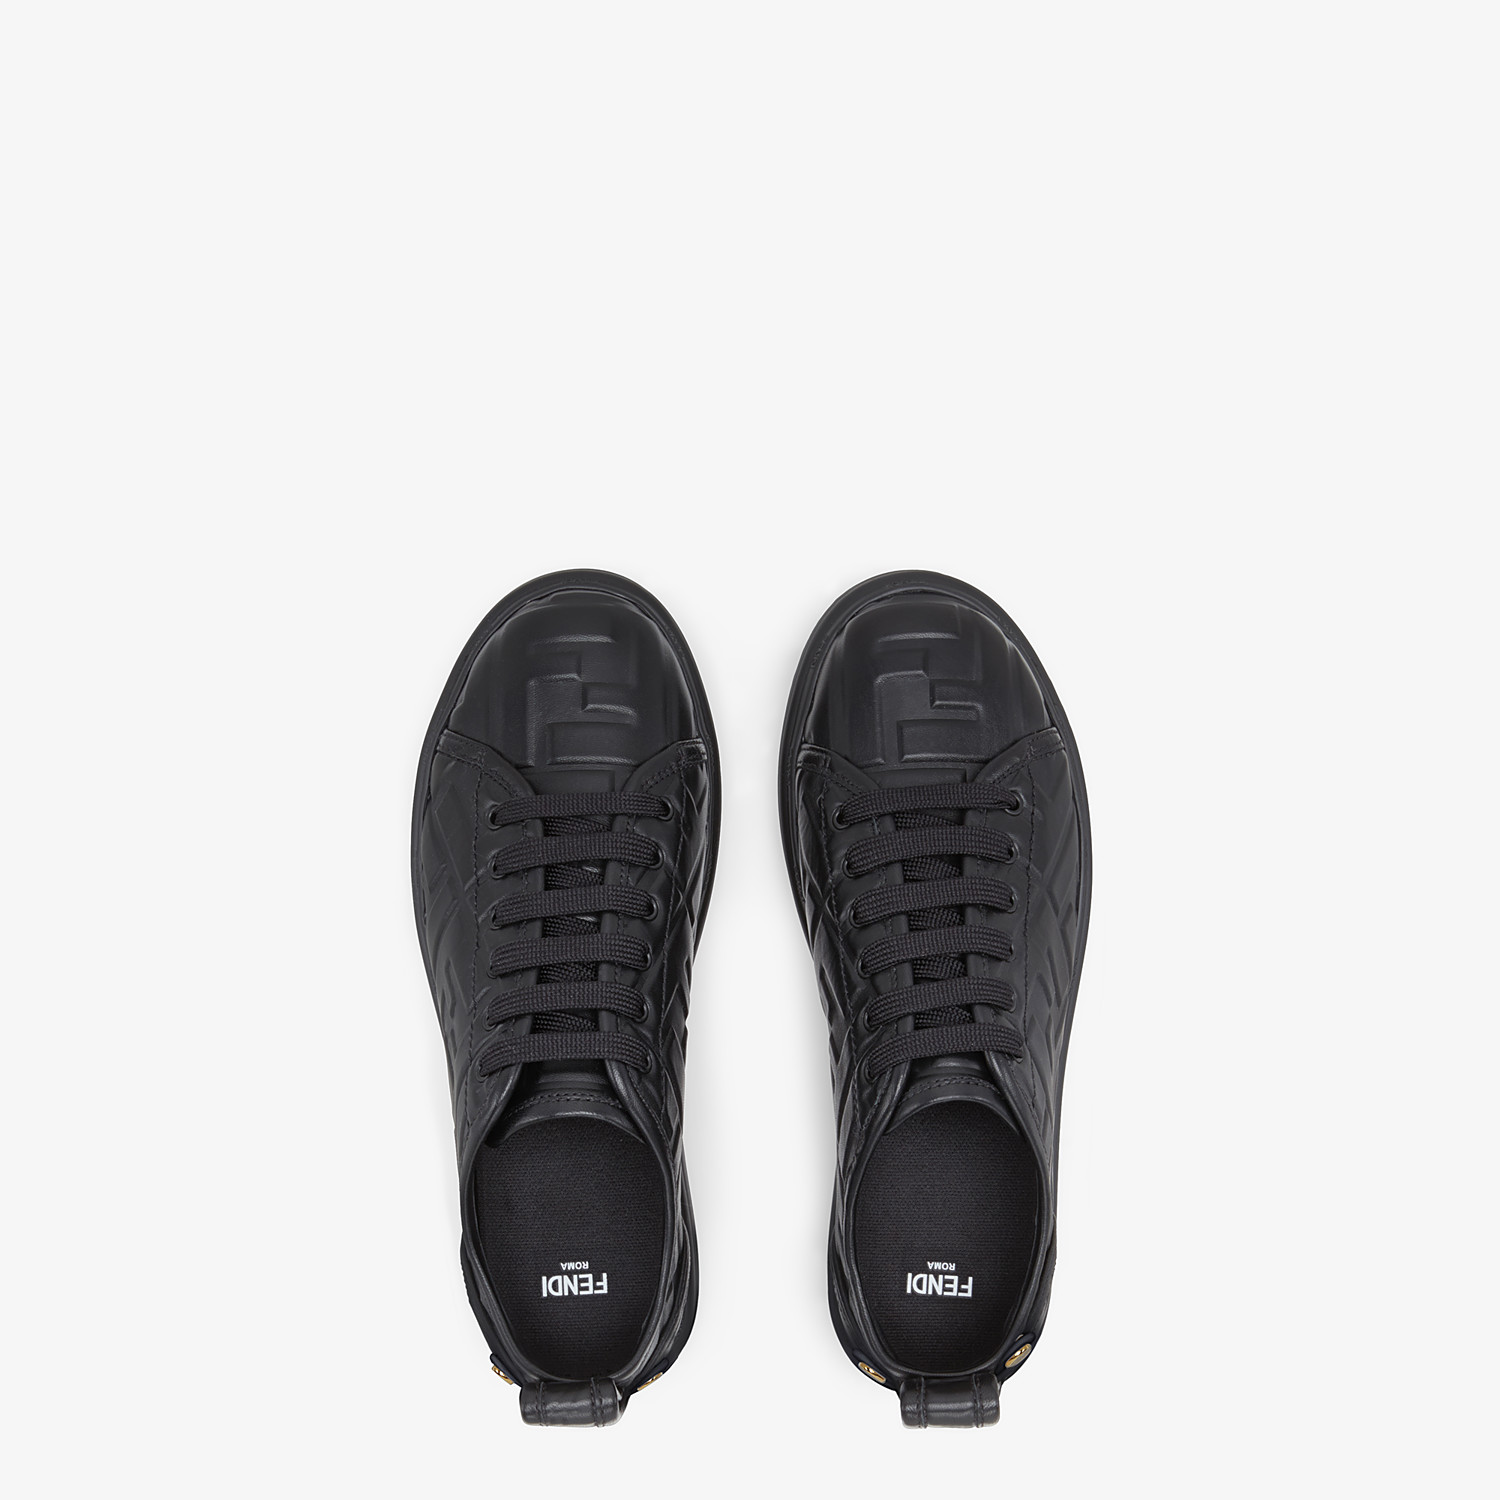 FENDI FENDI RISE - Black leather flatform sneakers - view 4 detail